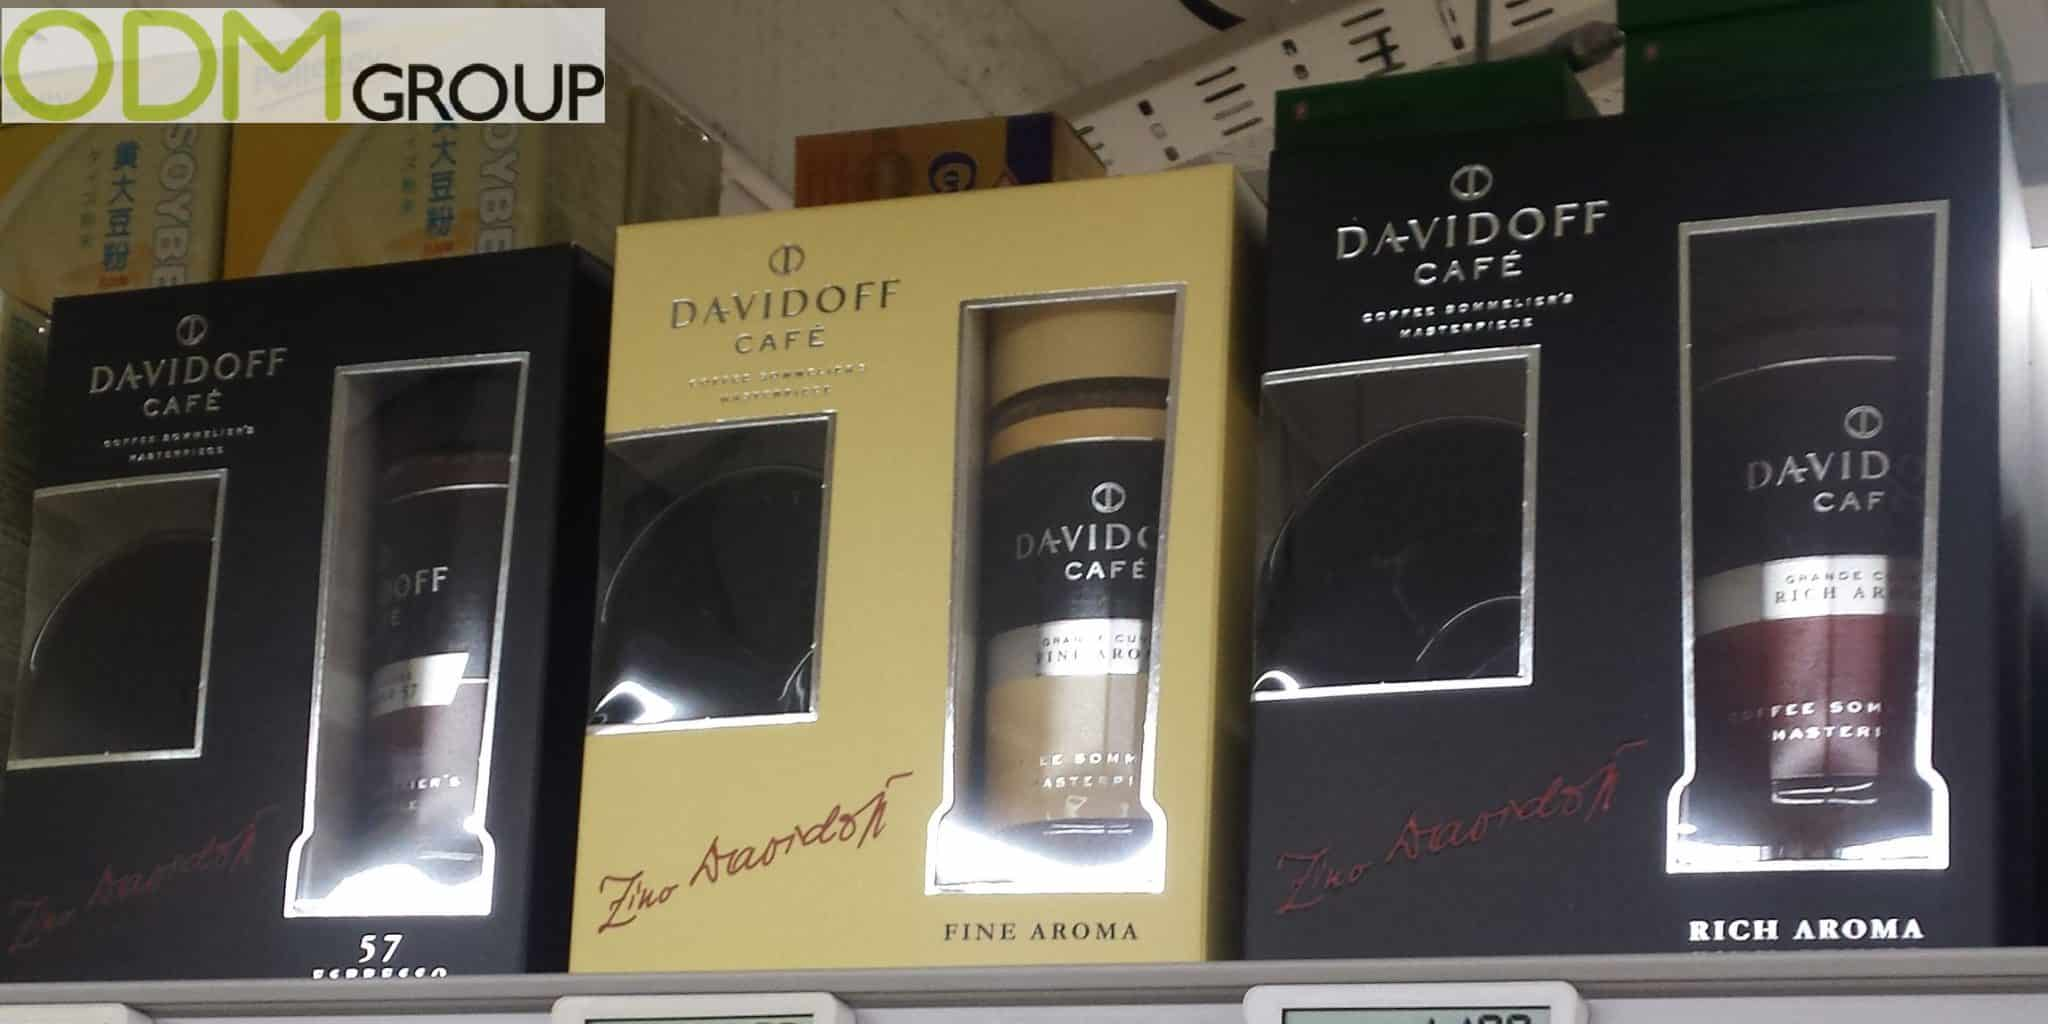 Davidoff Café Coffee Promo with Free Mug.